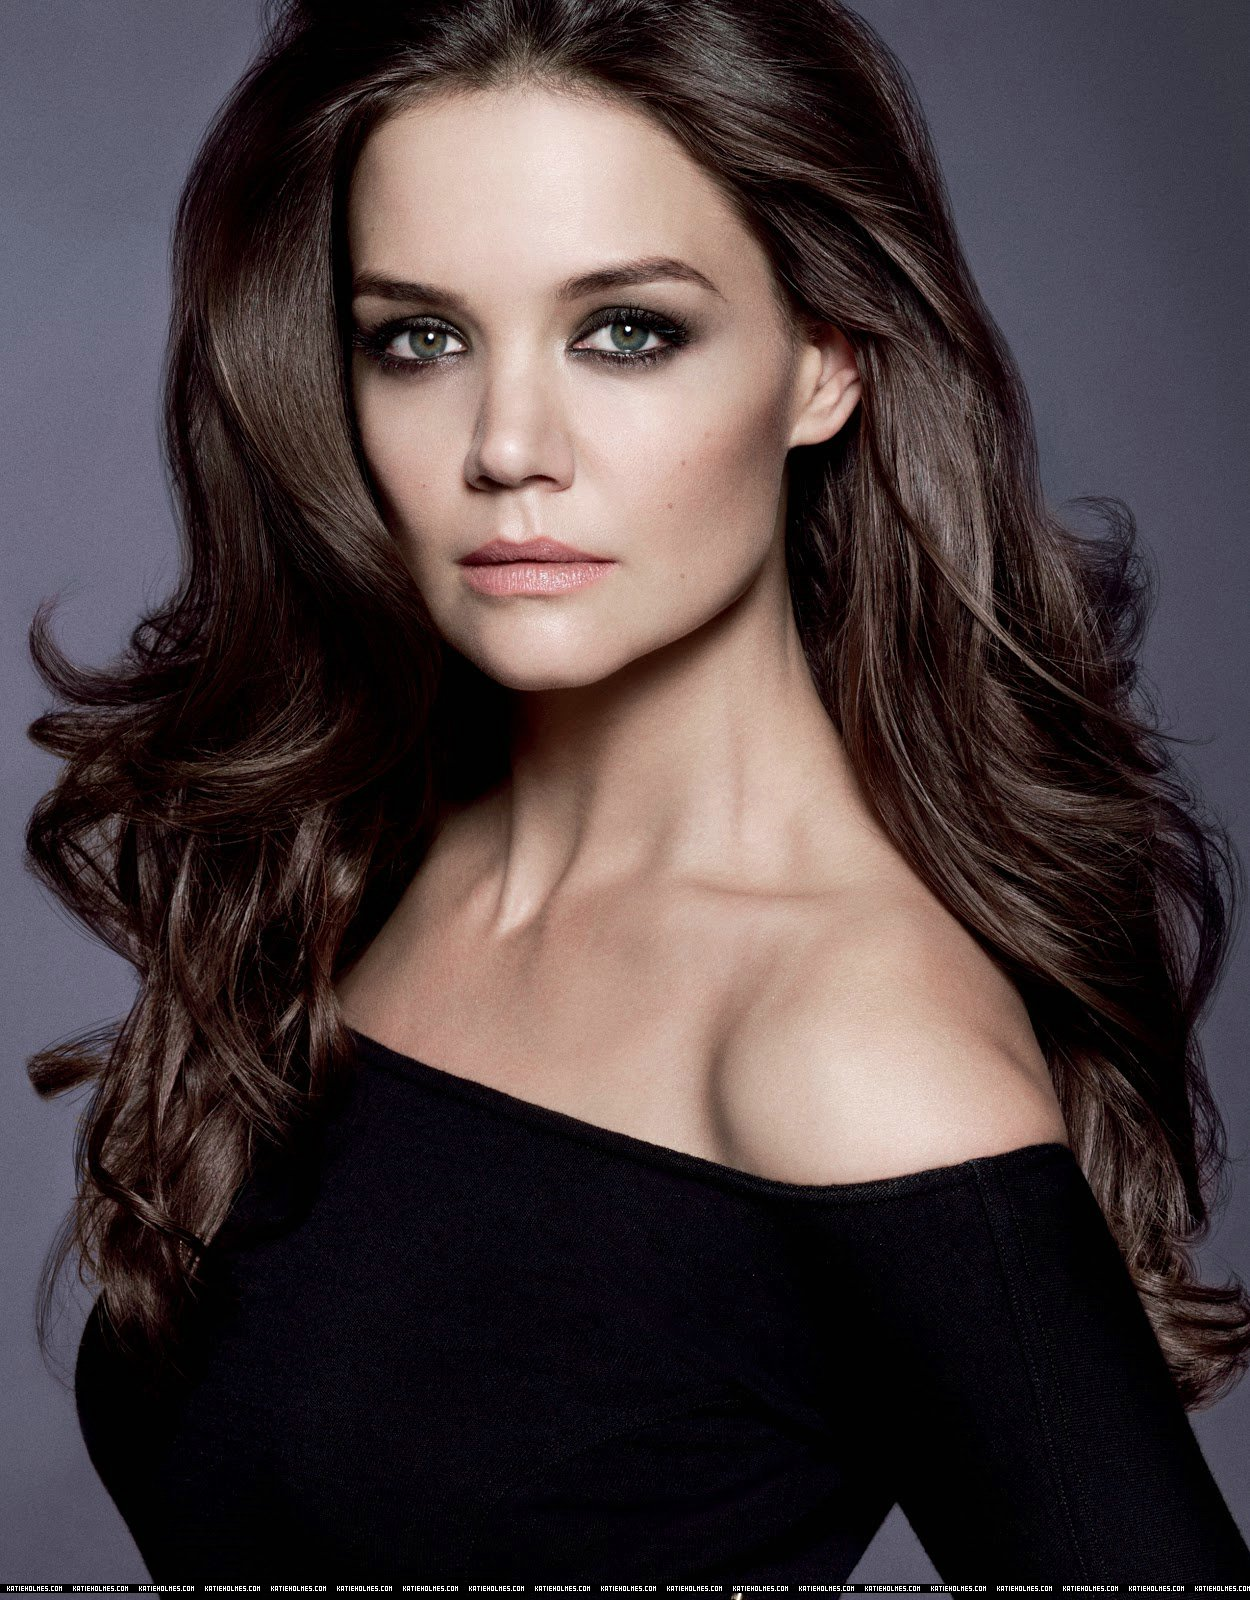 Actress Katie Holmes HD Images & Wallpapers